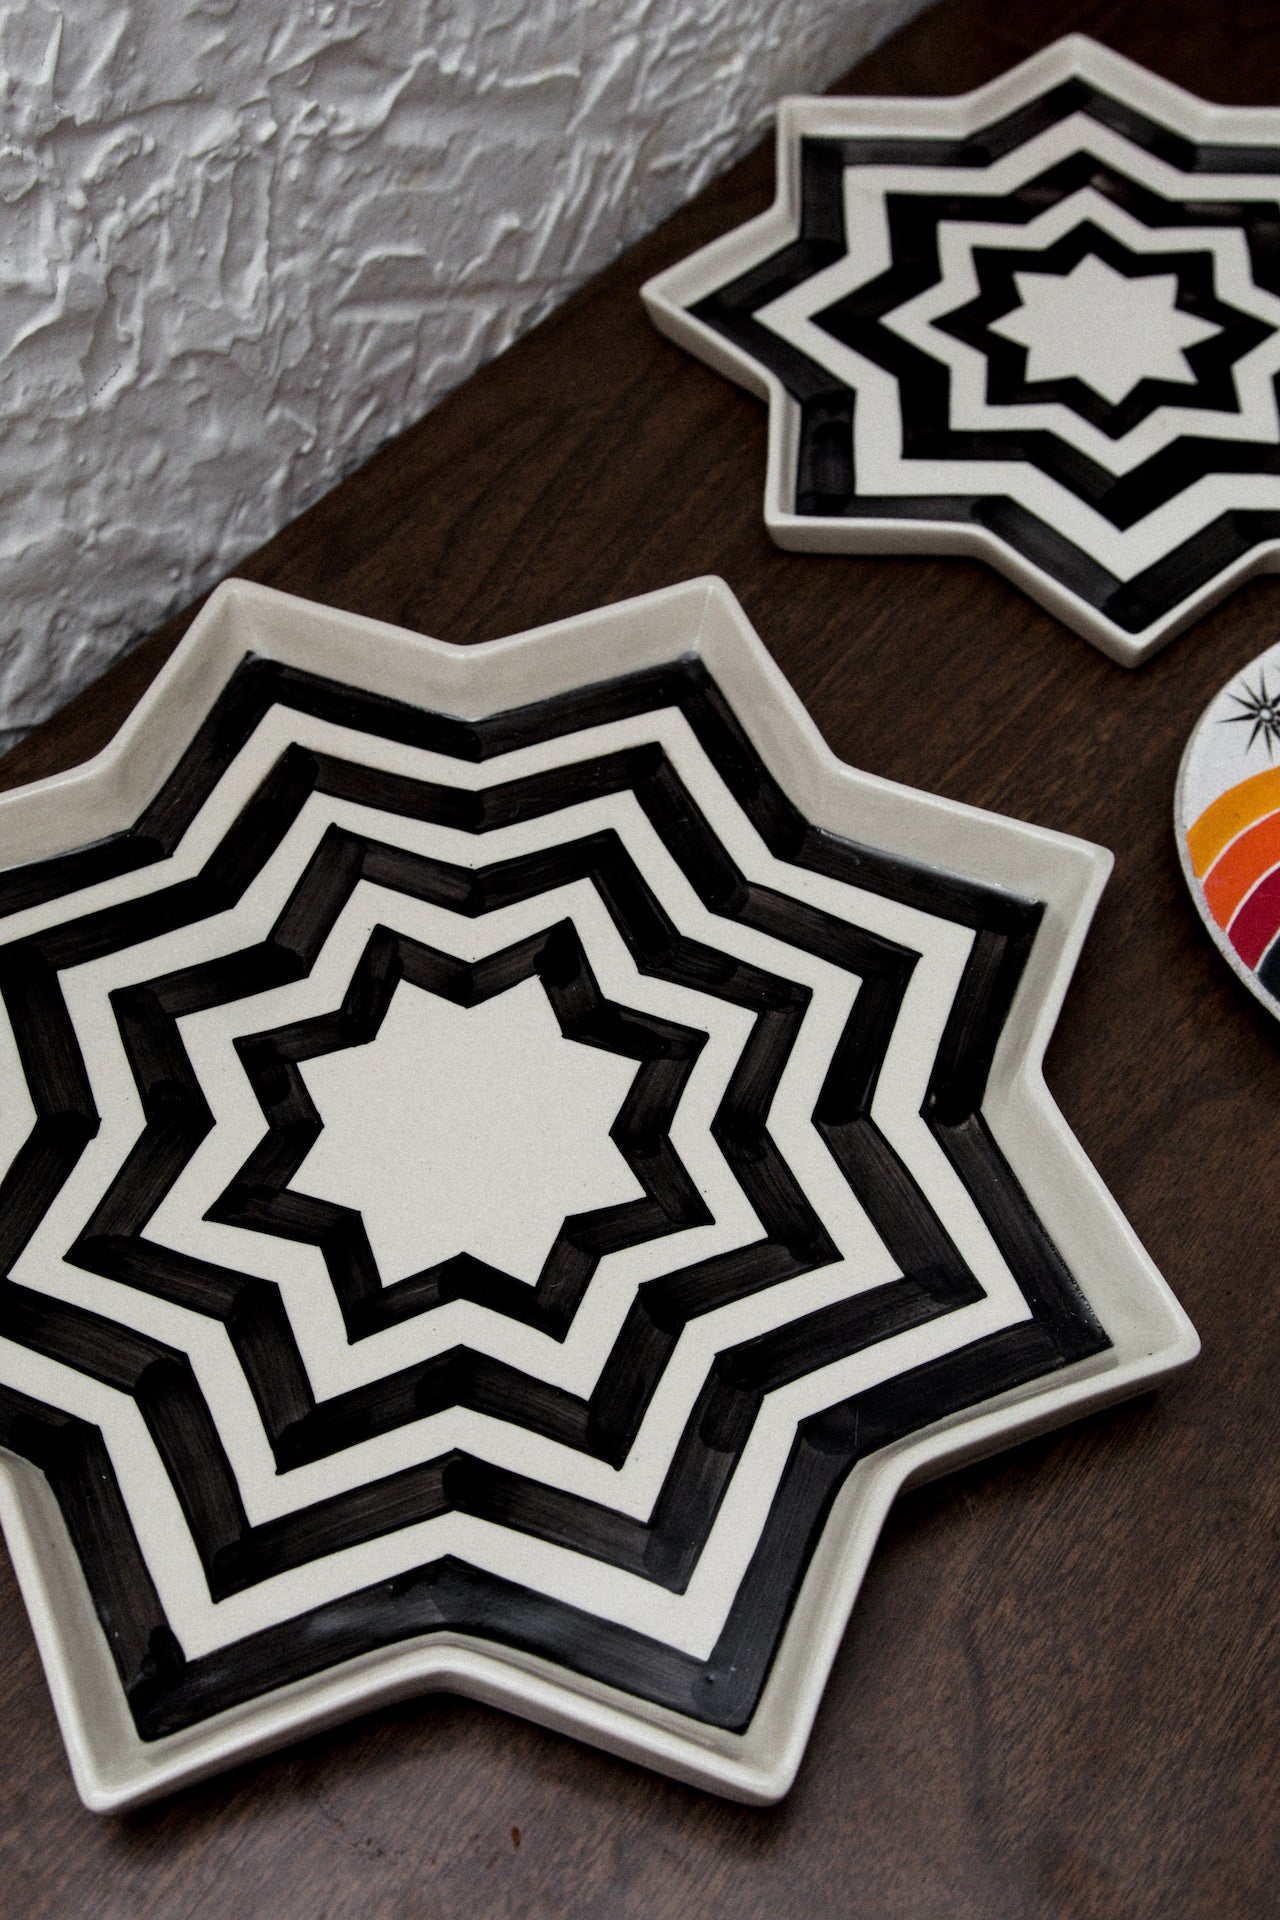 Star Striped Plates - 2 Sizes